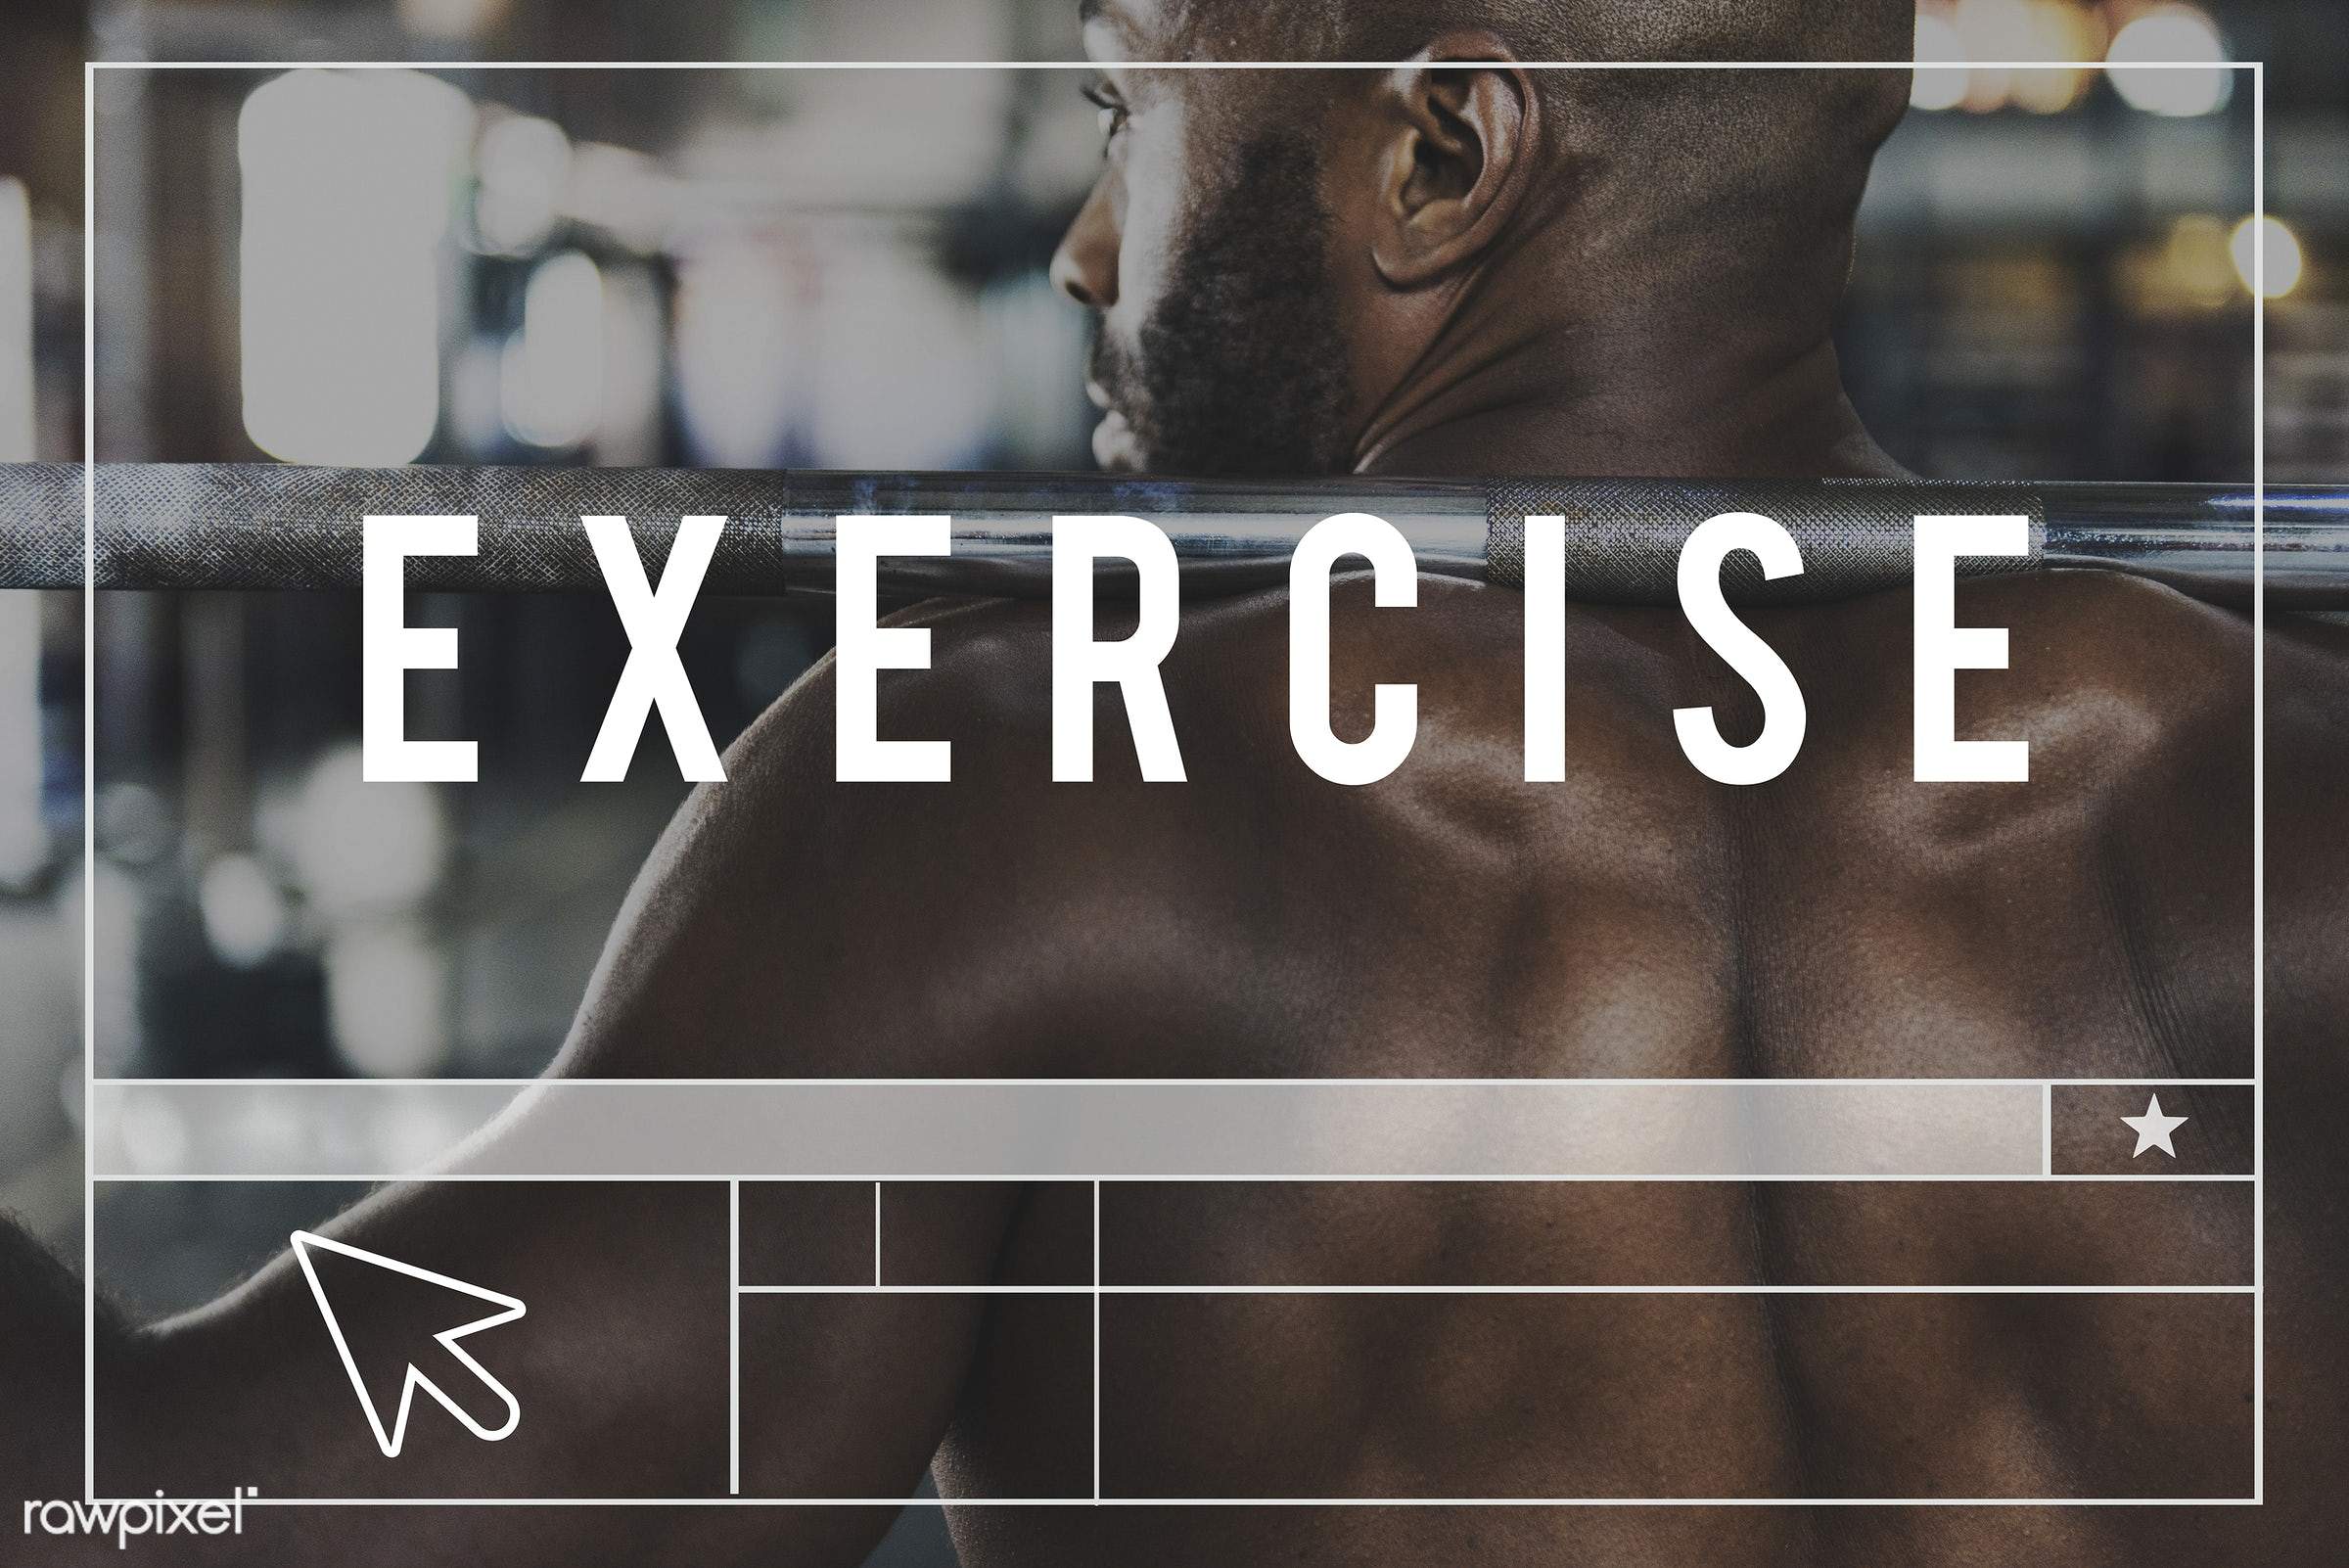 african descent, barbell, be strong, black, black people, body challenge, body matters, build a body, build your own body,...